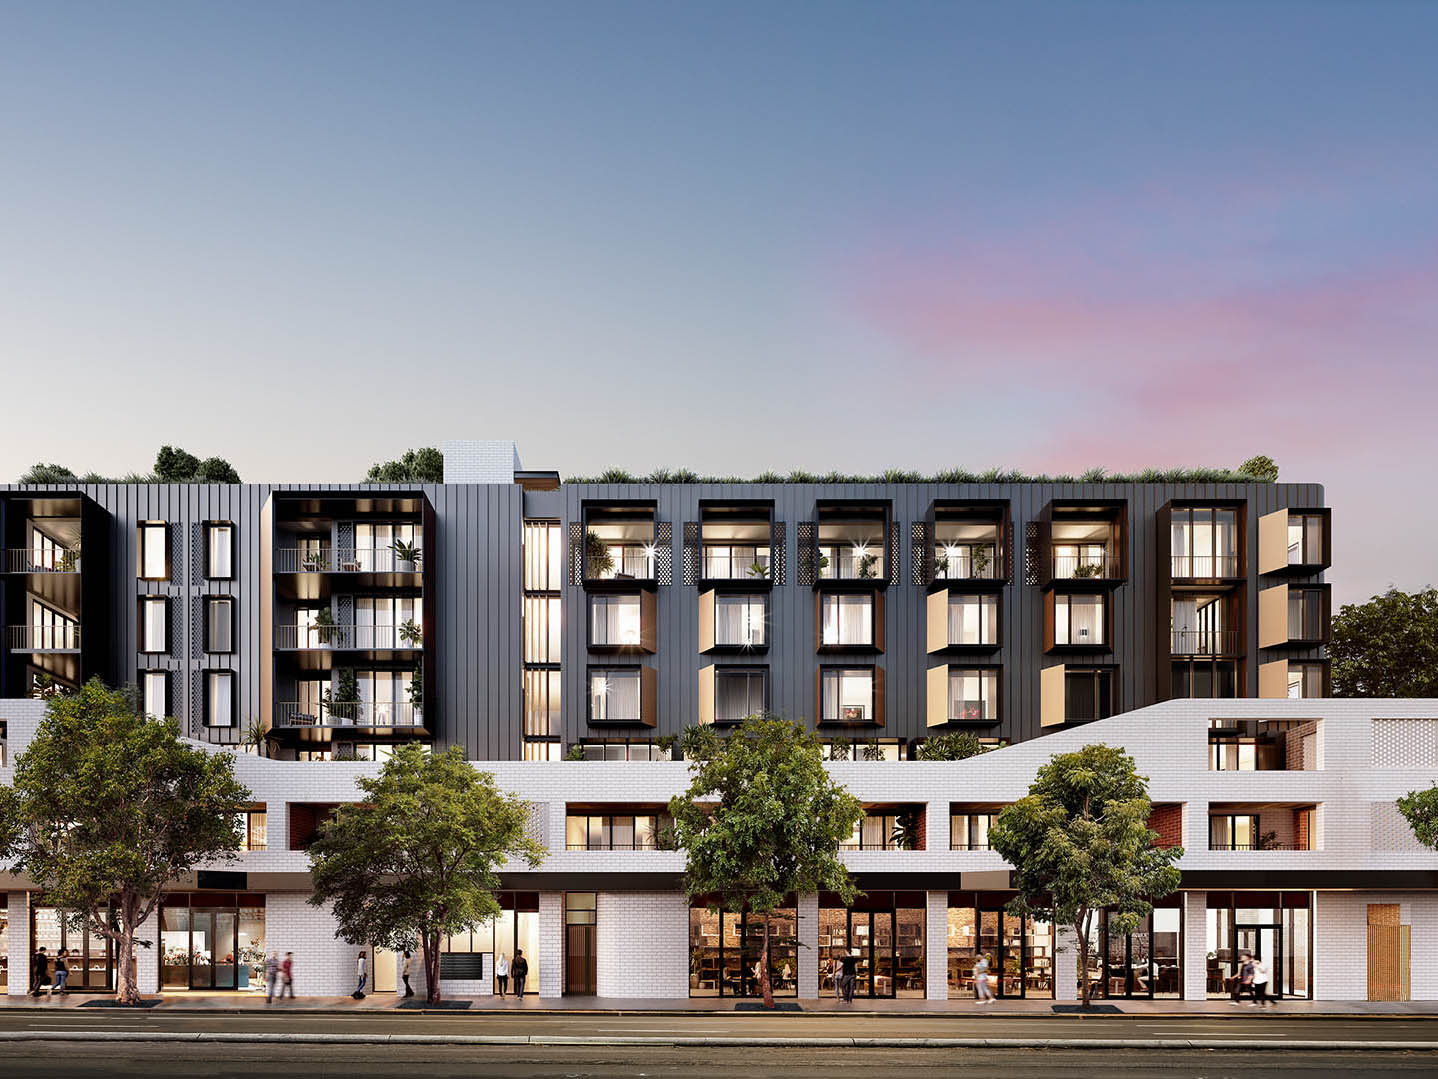 The Rathbone by AVID Property Group (AVID) – a new terrace-style apartment project in Surry Hills – has received a national environmental accreditation, in the form of a six 'Leaf' EnviroDevelopment certification from the Urban Development Institute of Australia (UDIA). Image: Supplied